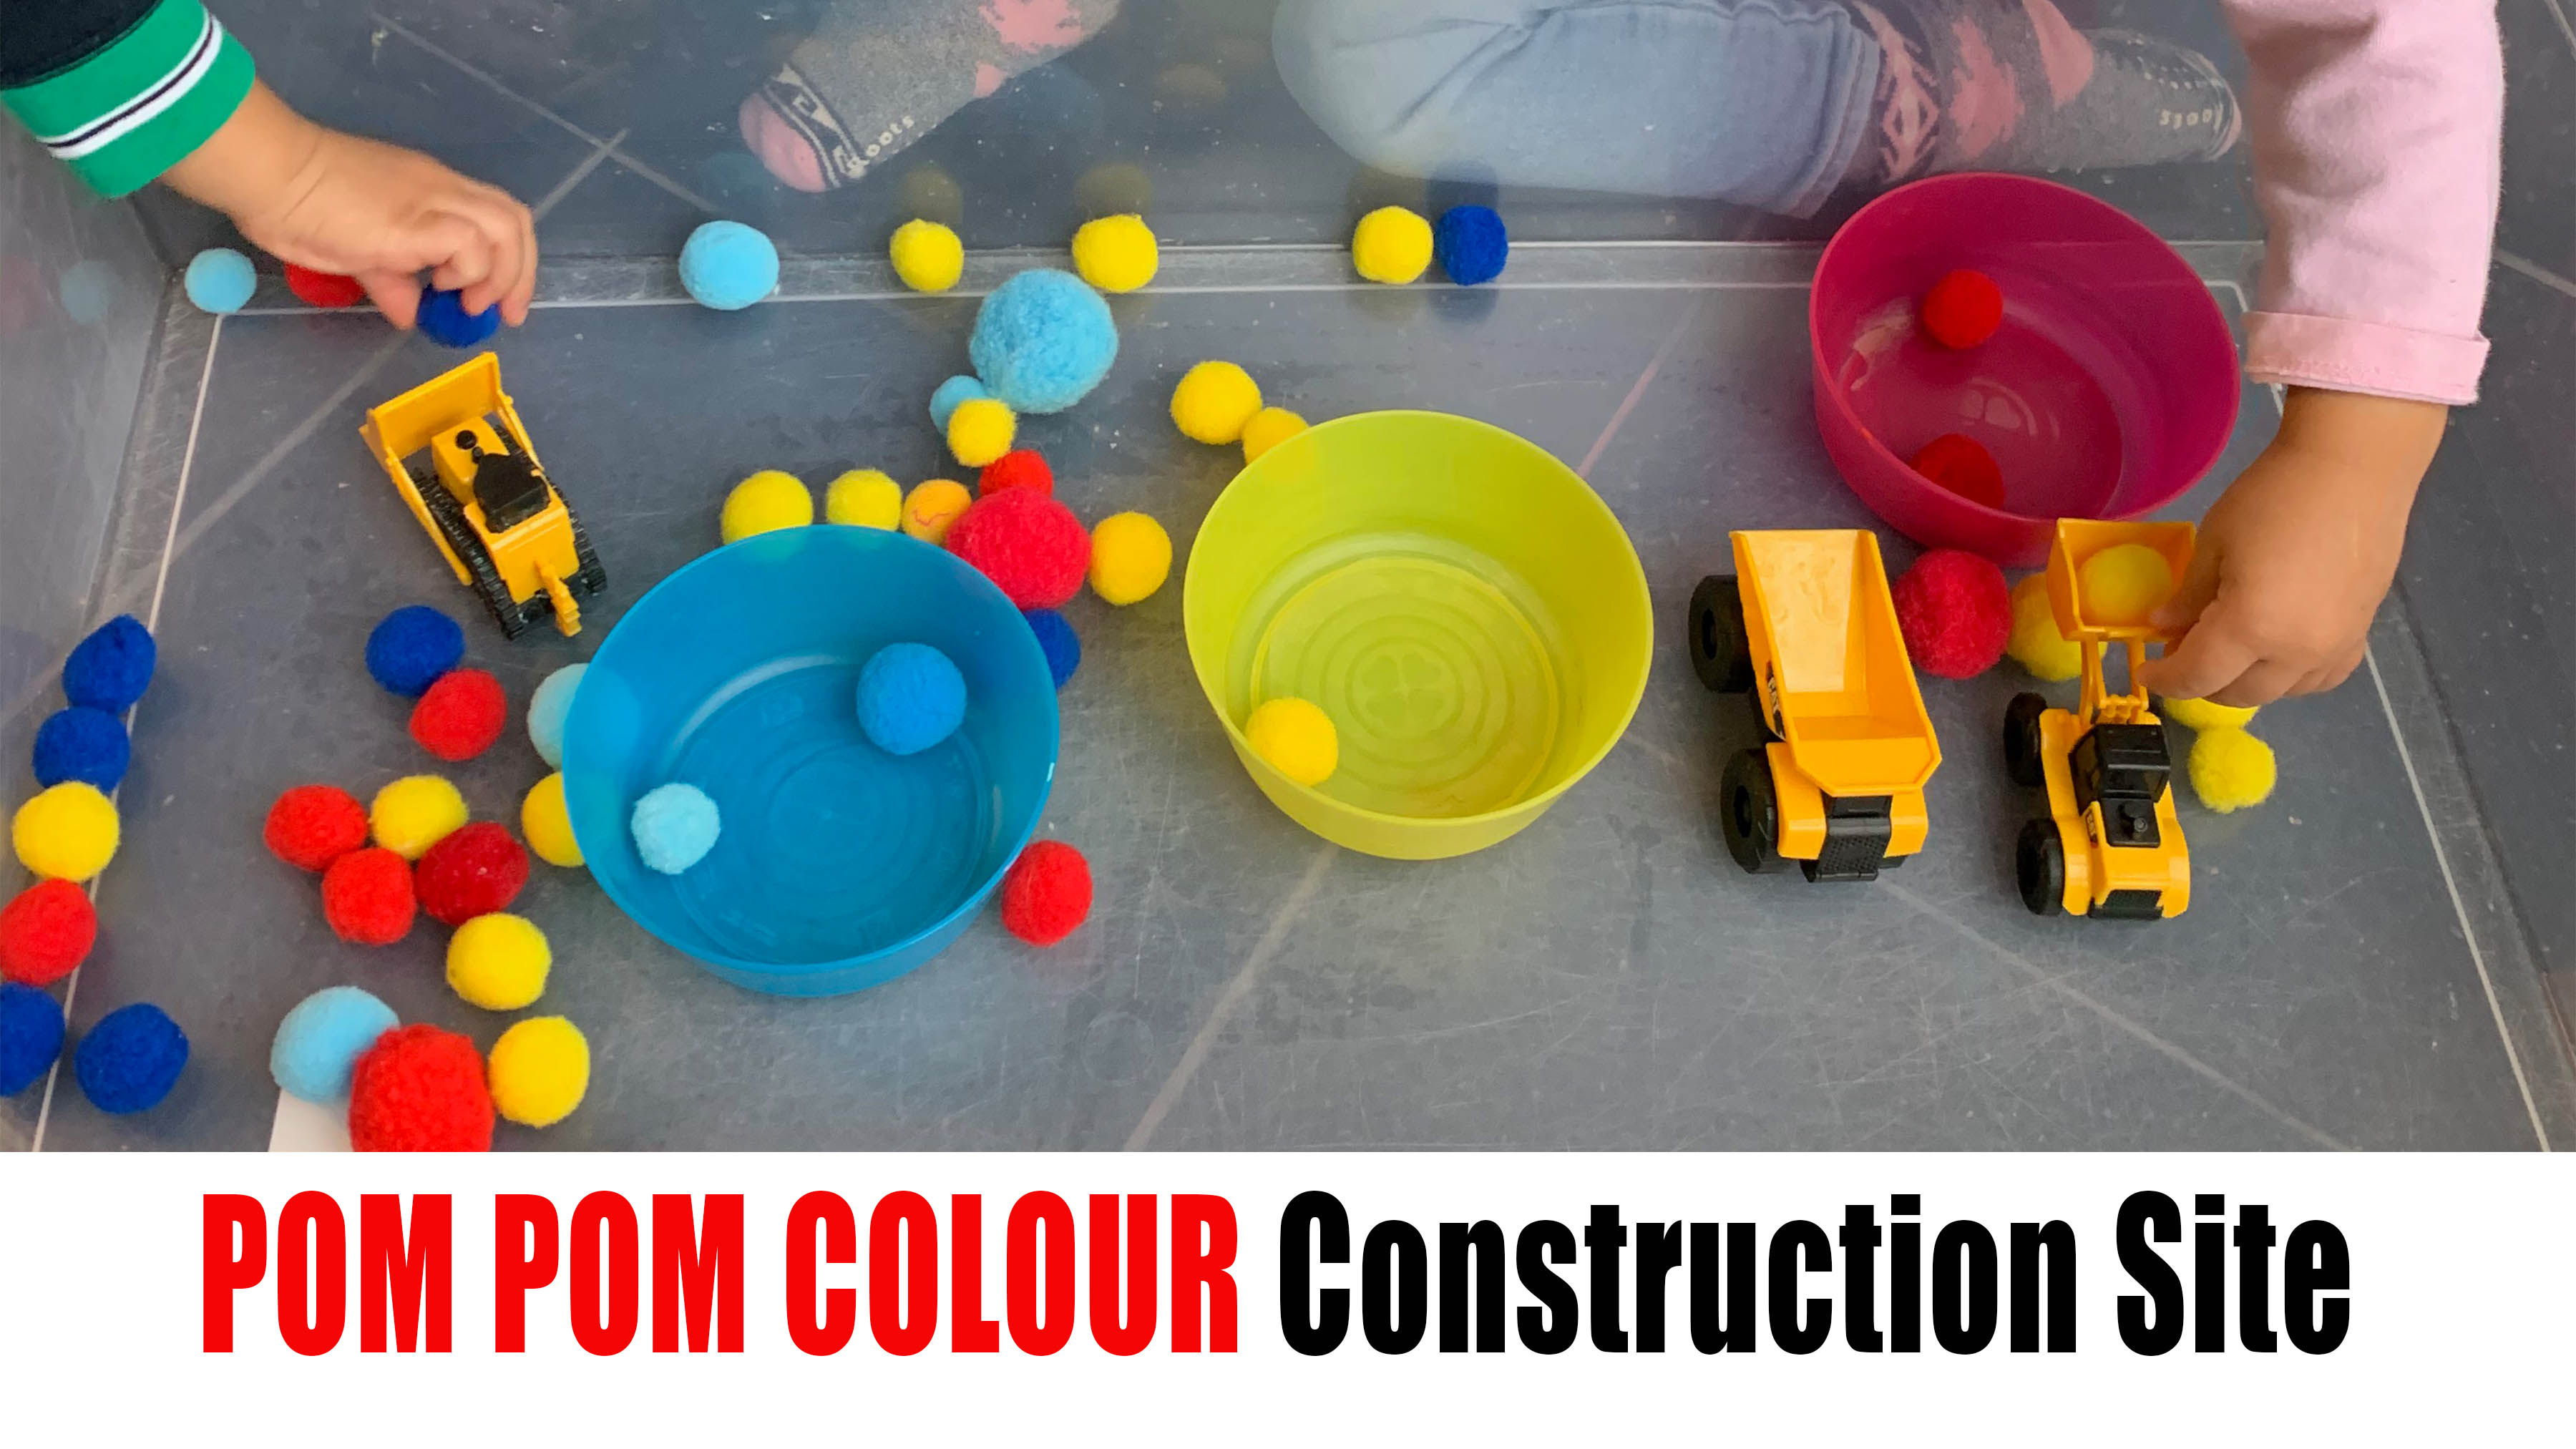 Pom Pom Construction Site color sorting activity